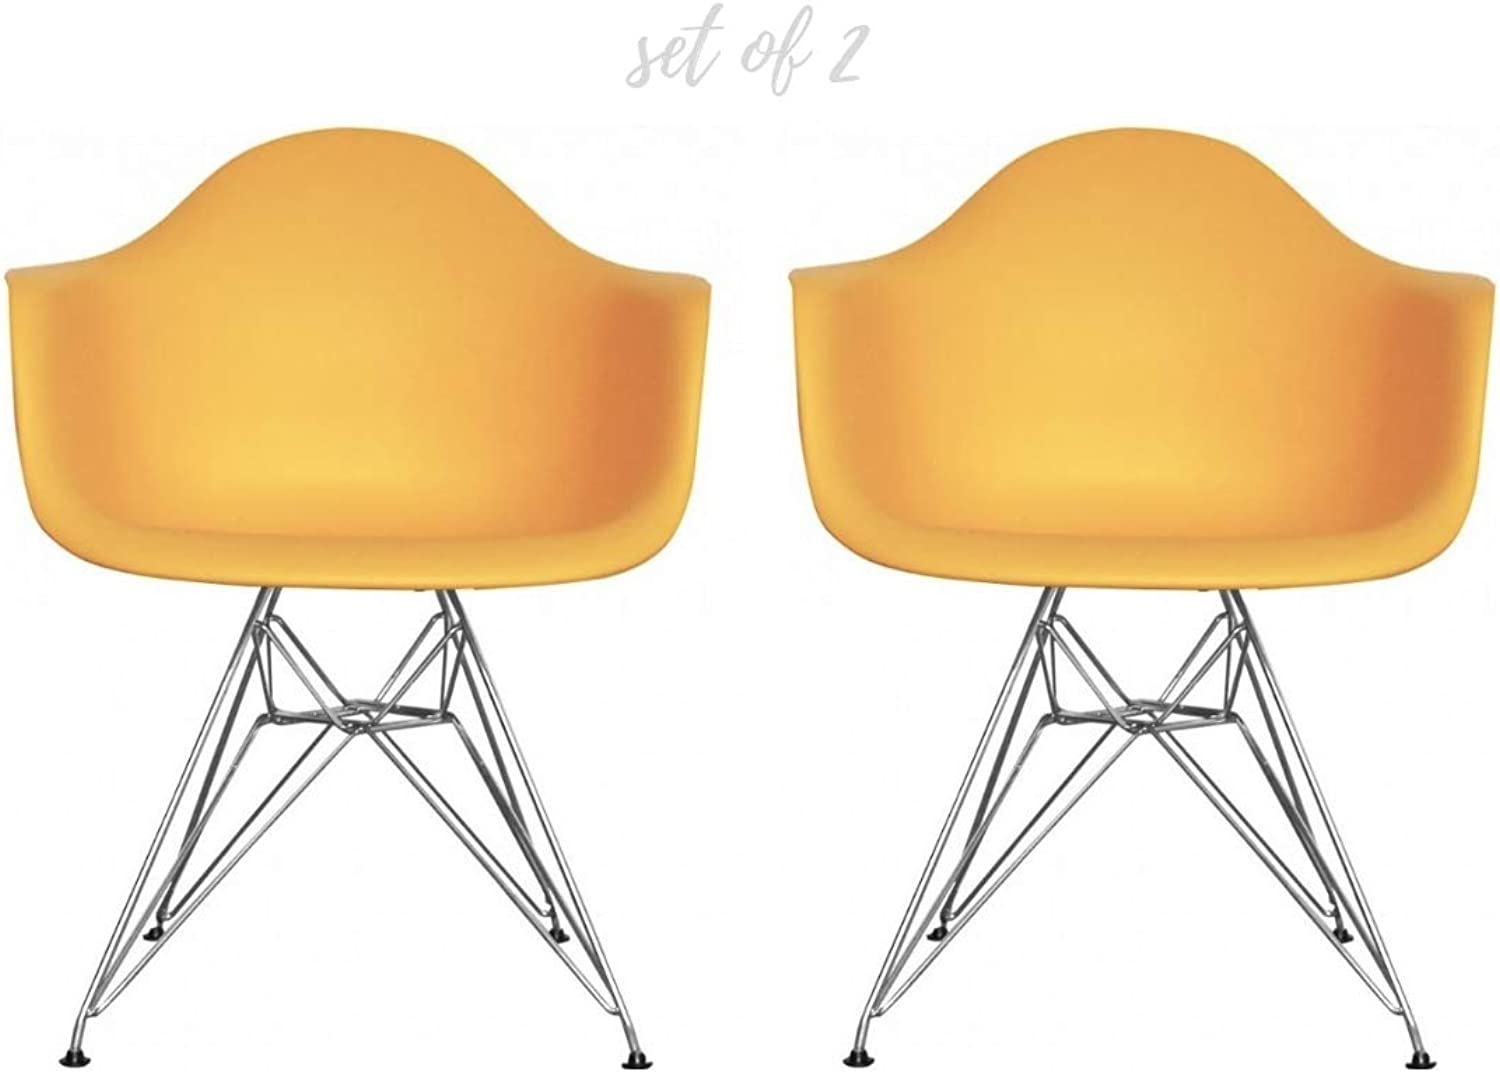 Take Me Home Furniture Eiffel Style Bucket Chair with Chrome Legs, Yellow, Set of 2, Dining Chair